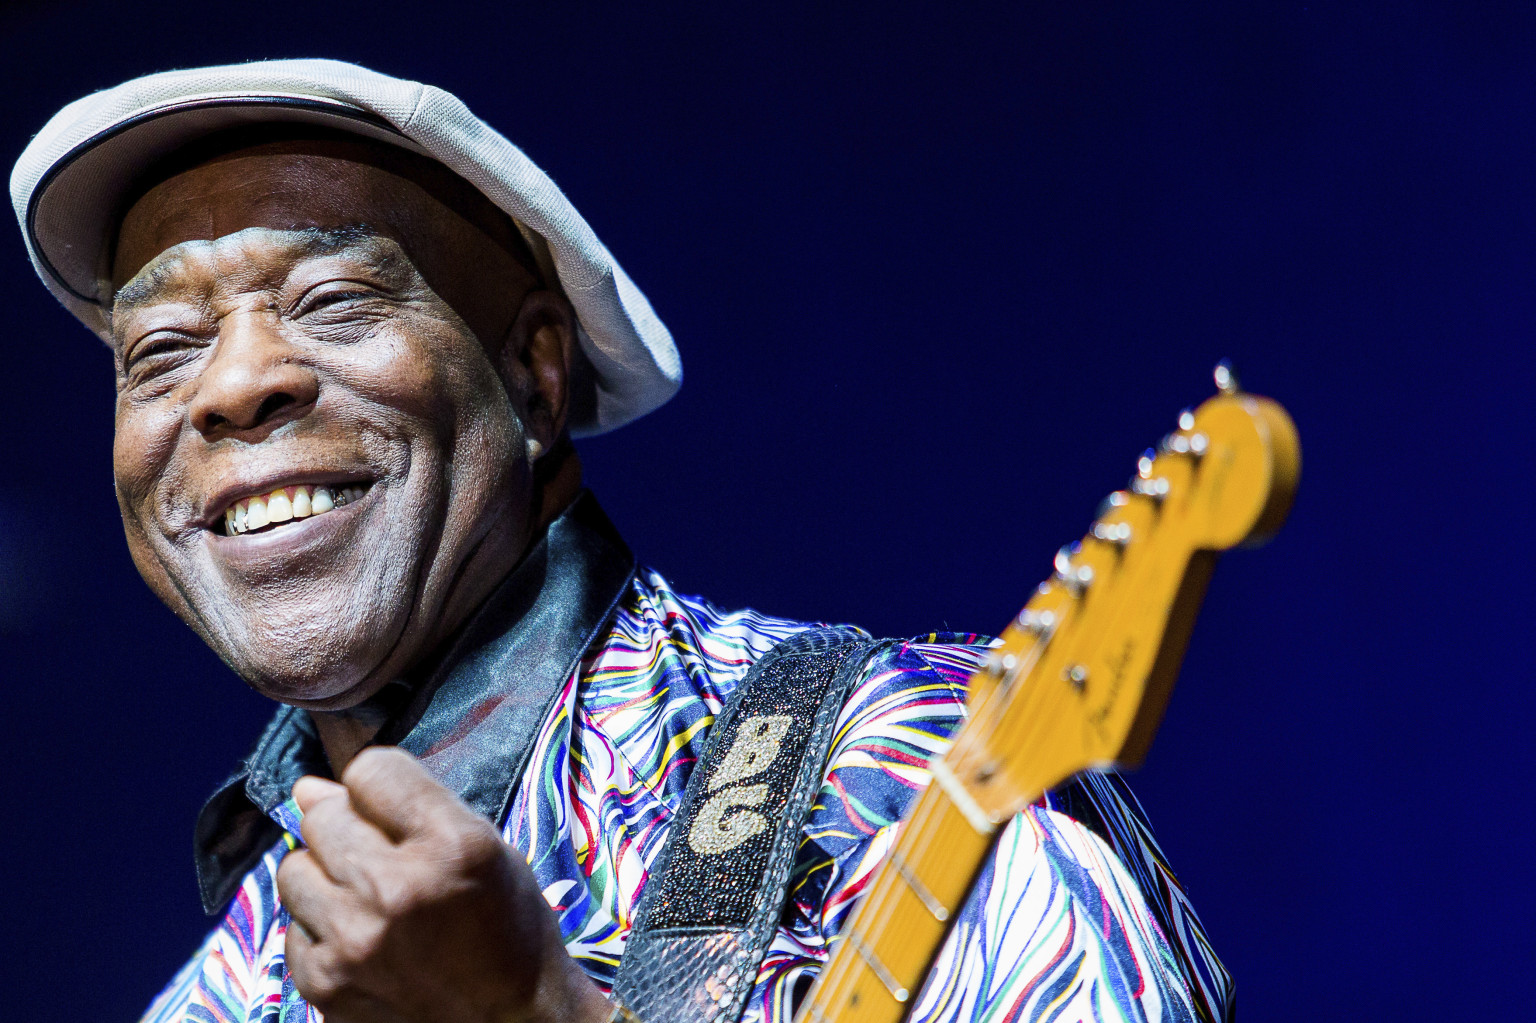 Legendary blues musician Buddy Guy coming to del Lago